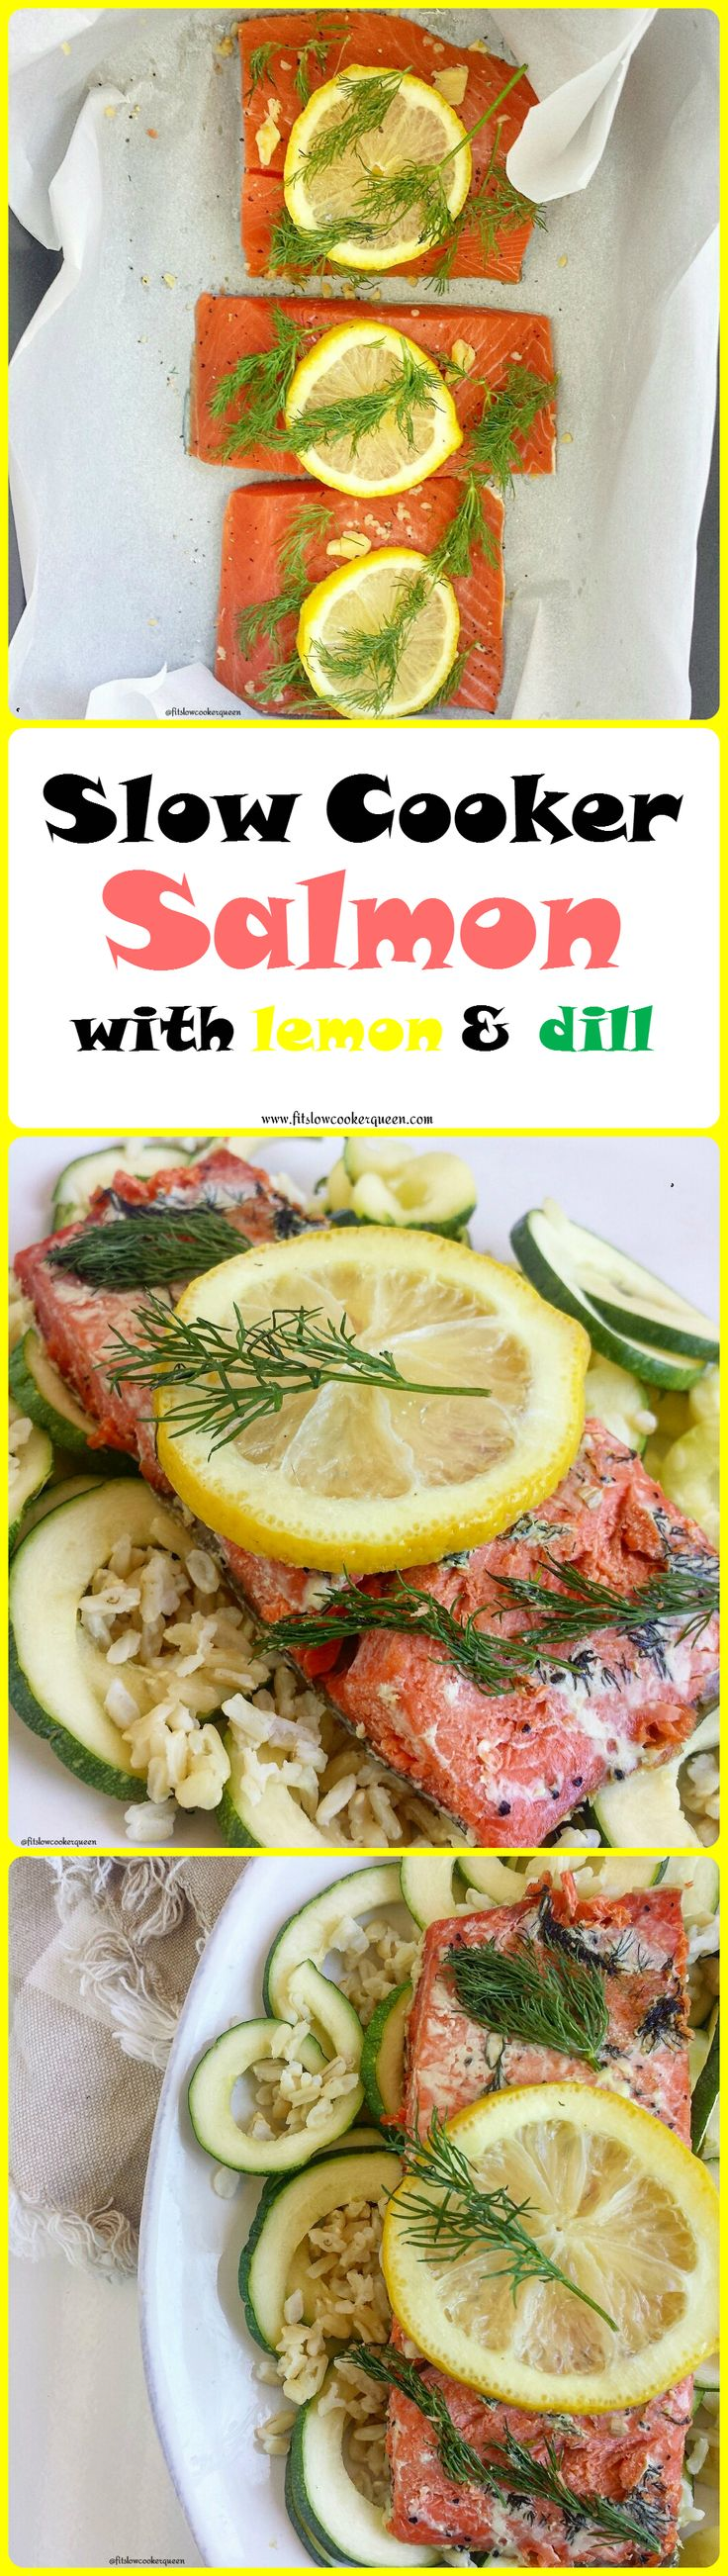 Best 25 cooking salmon ideas on pinterest salmon recipes healthy slow cooker crockpot recipe cooking salmon in the slow cooker produces perfectly cooked ccuart Image collections